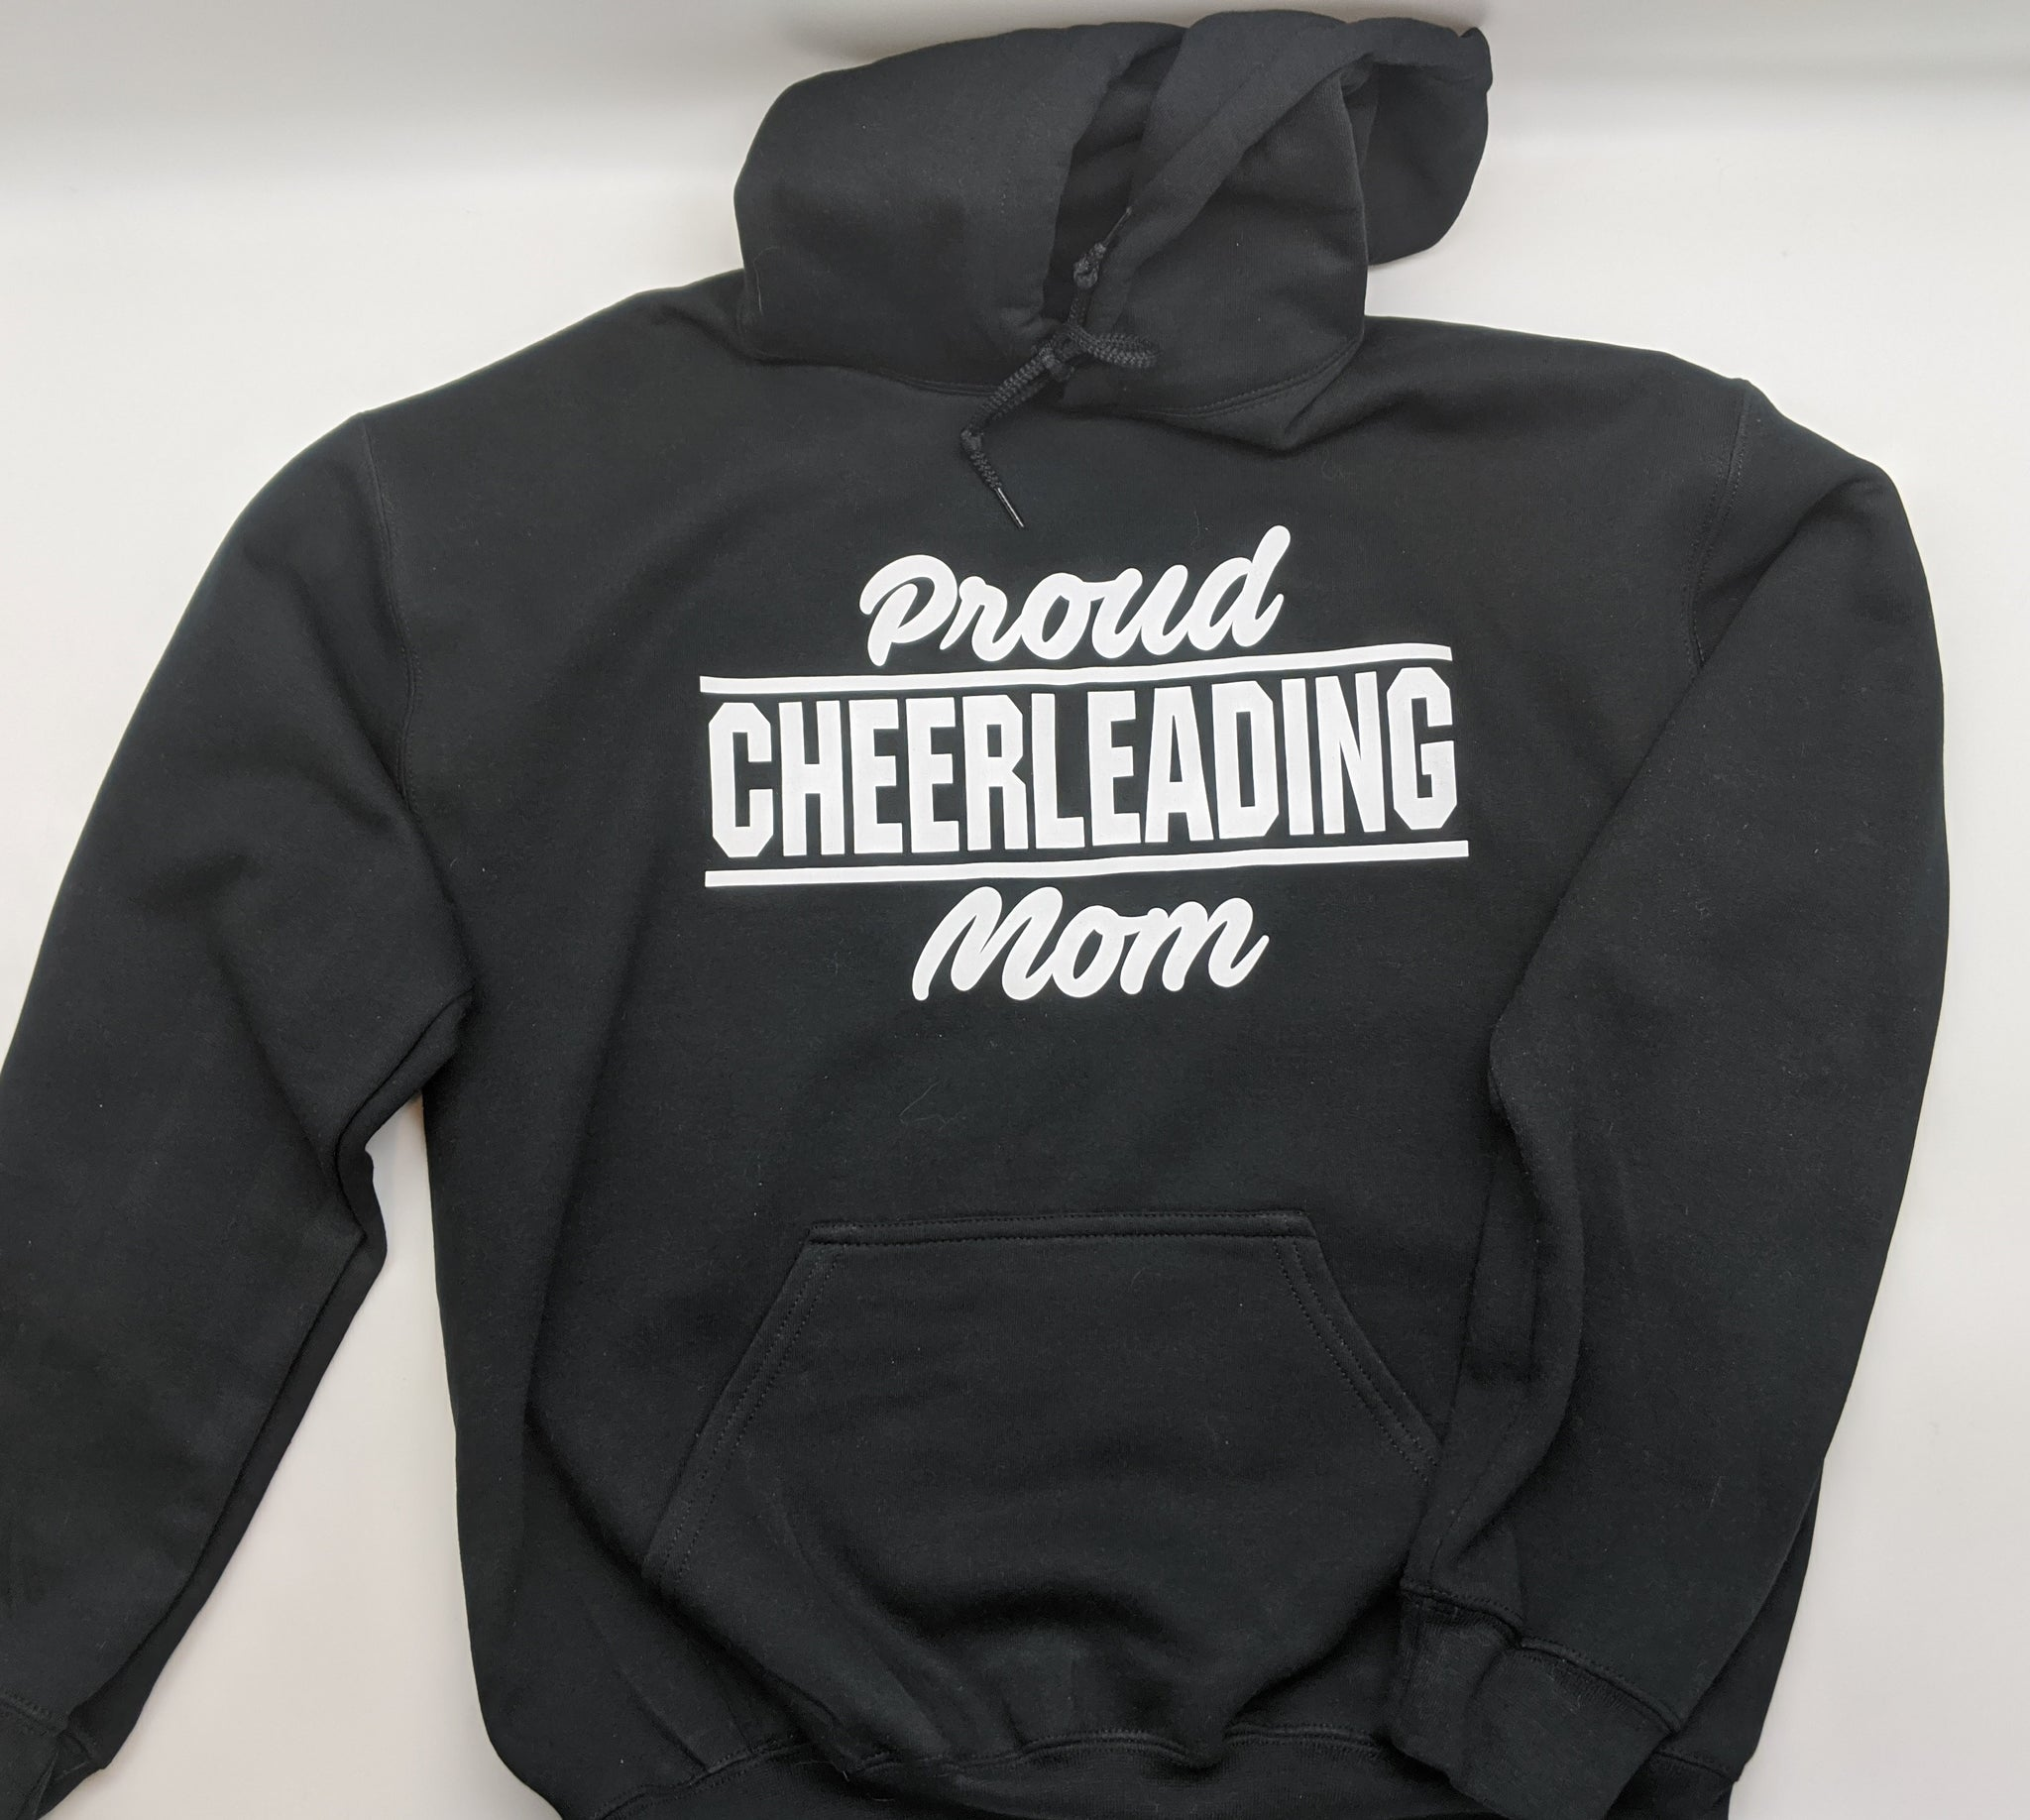 Proud Cheerleading Mom Sweatshirt